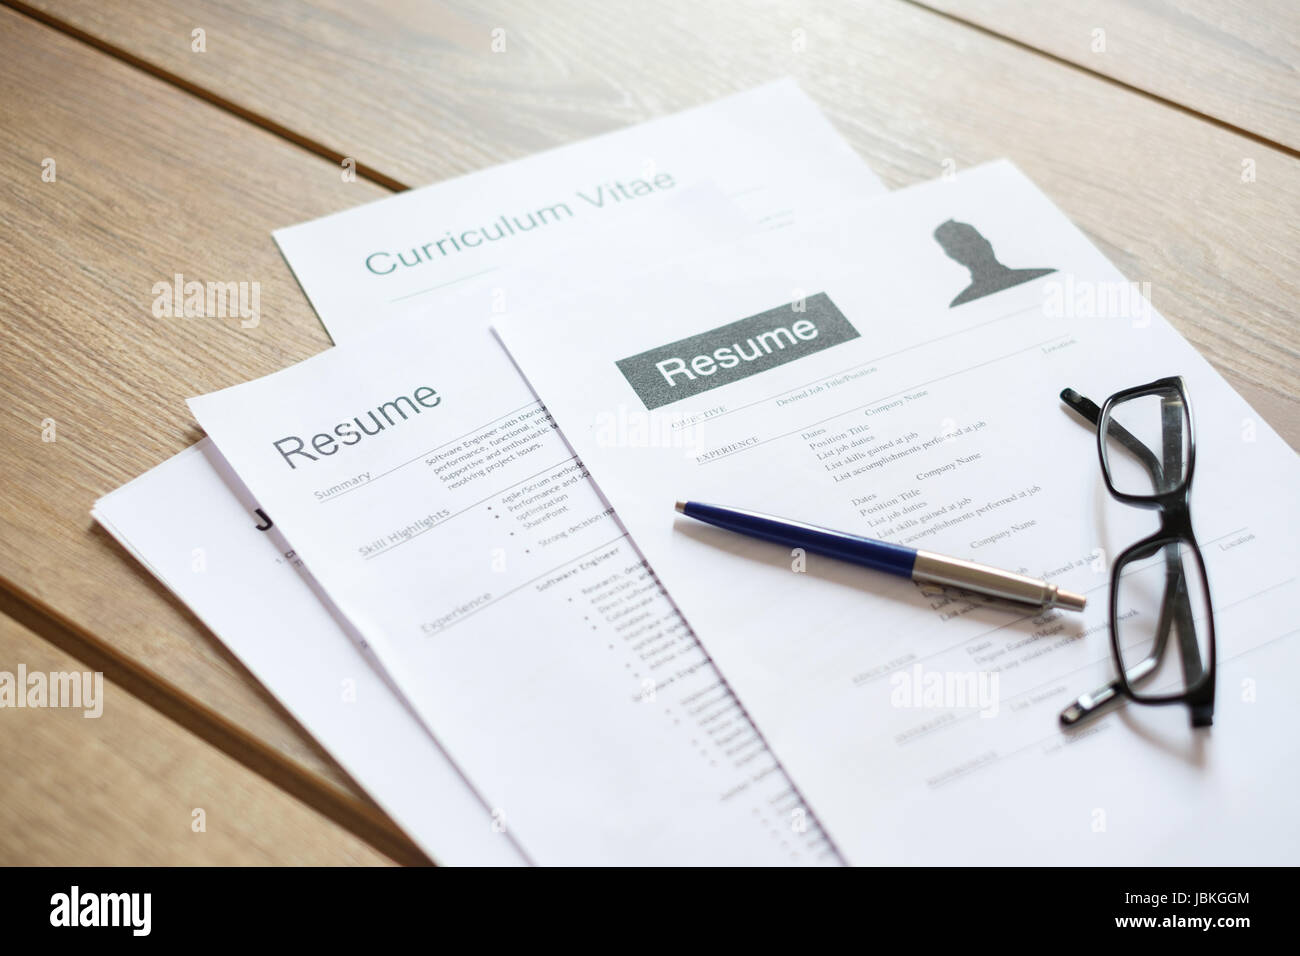 Resume applications on wooden desk ready to be reviewed Stock Photo